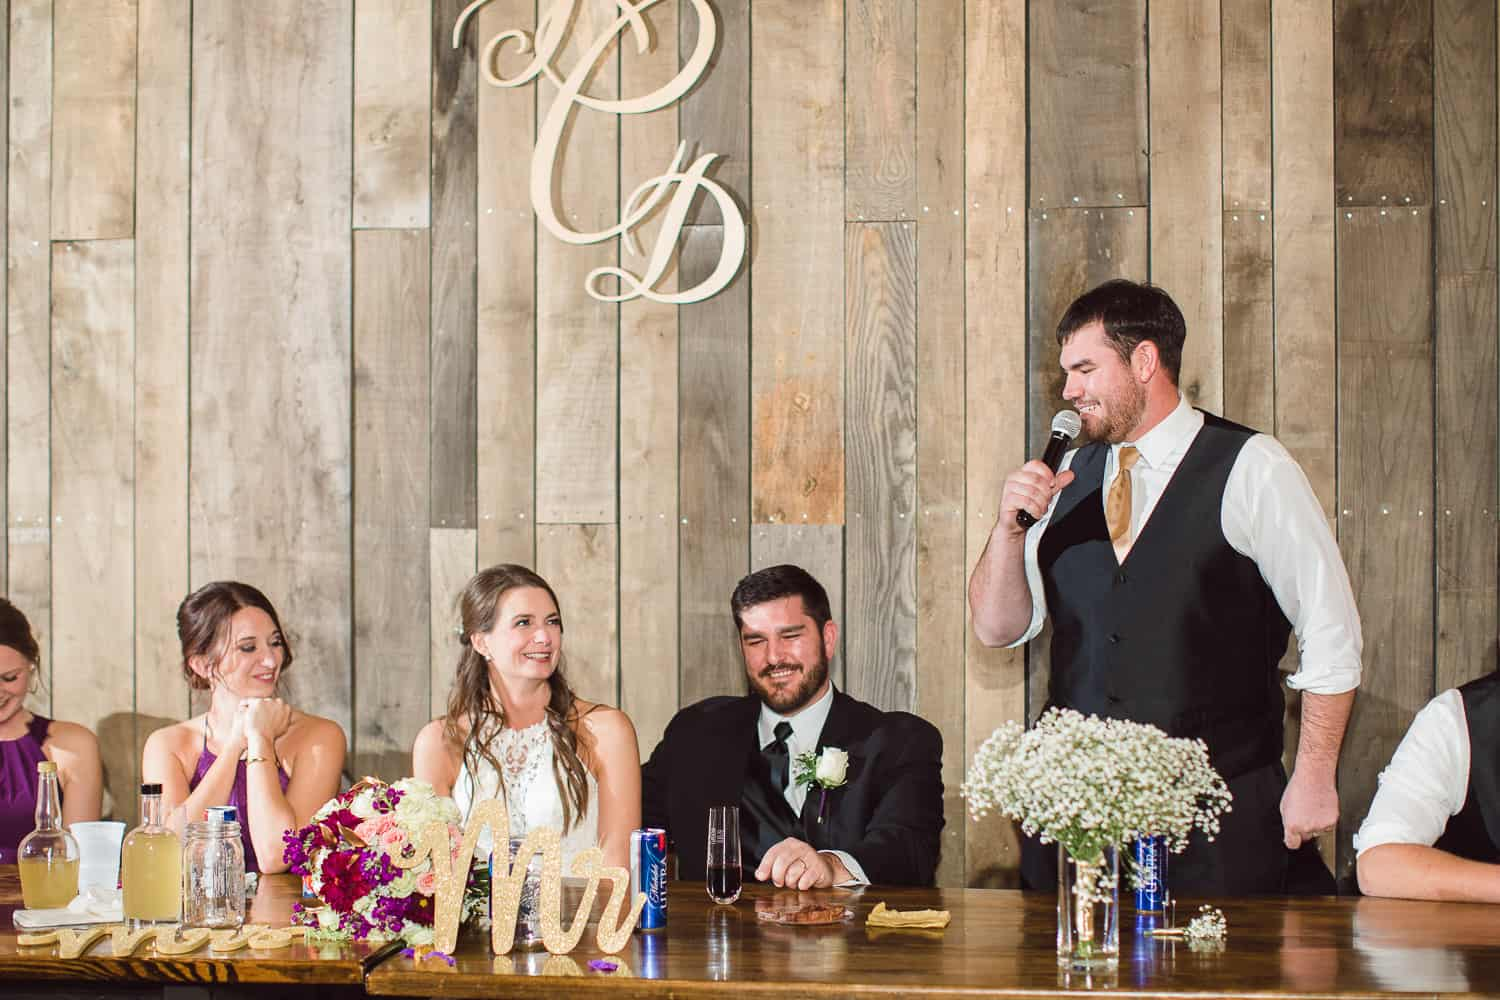 Home Place at Valley View wedding reception